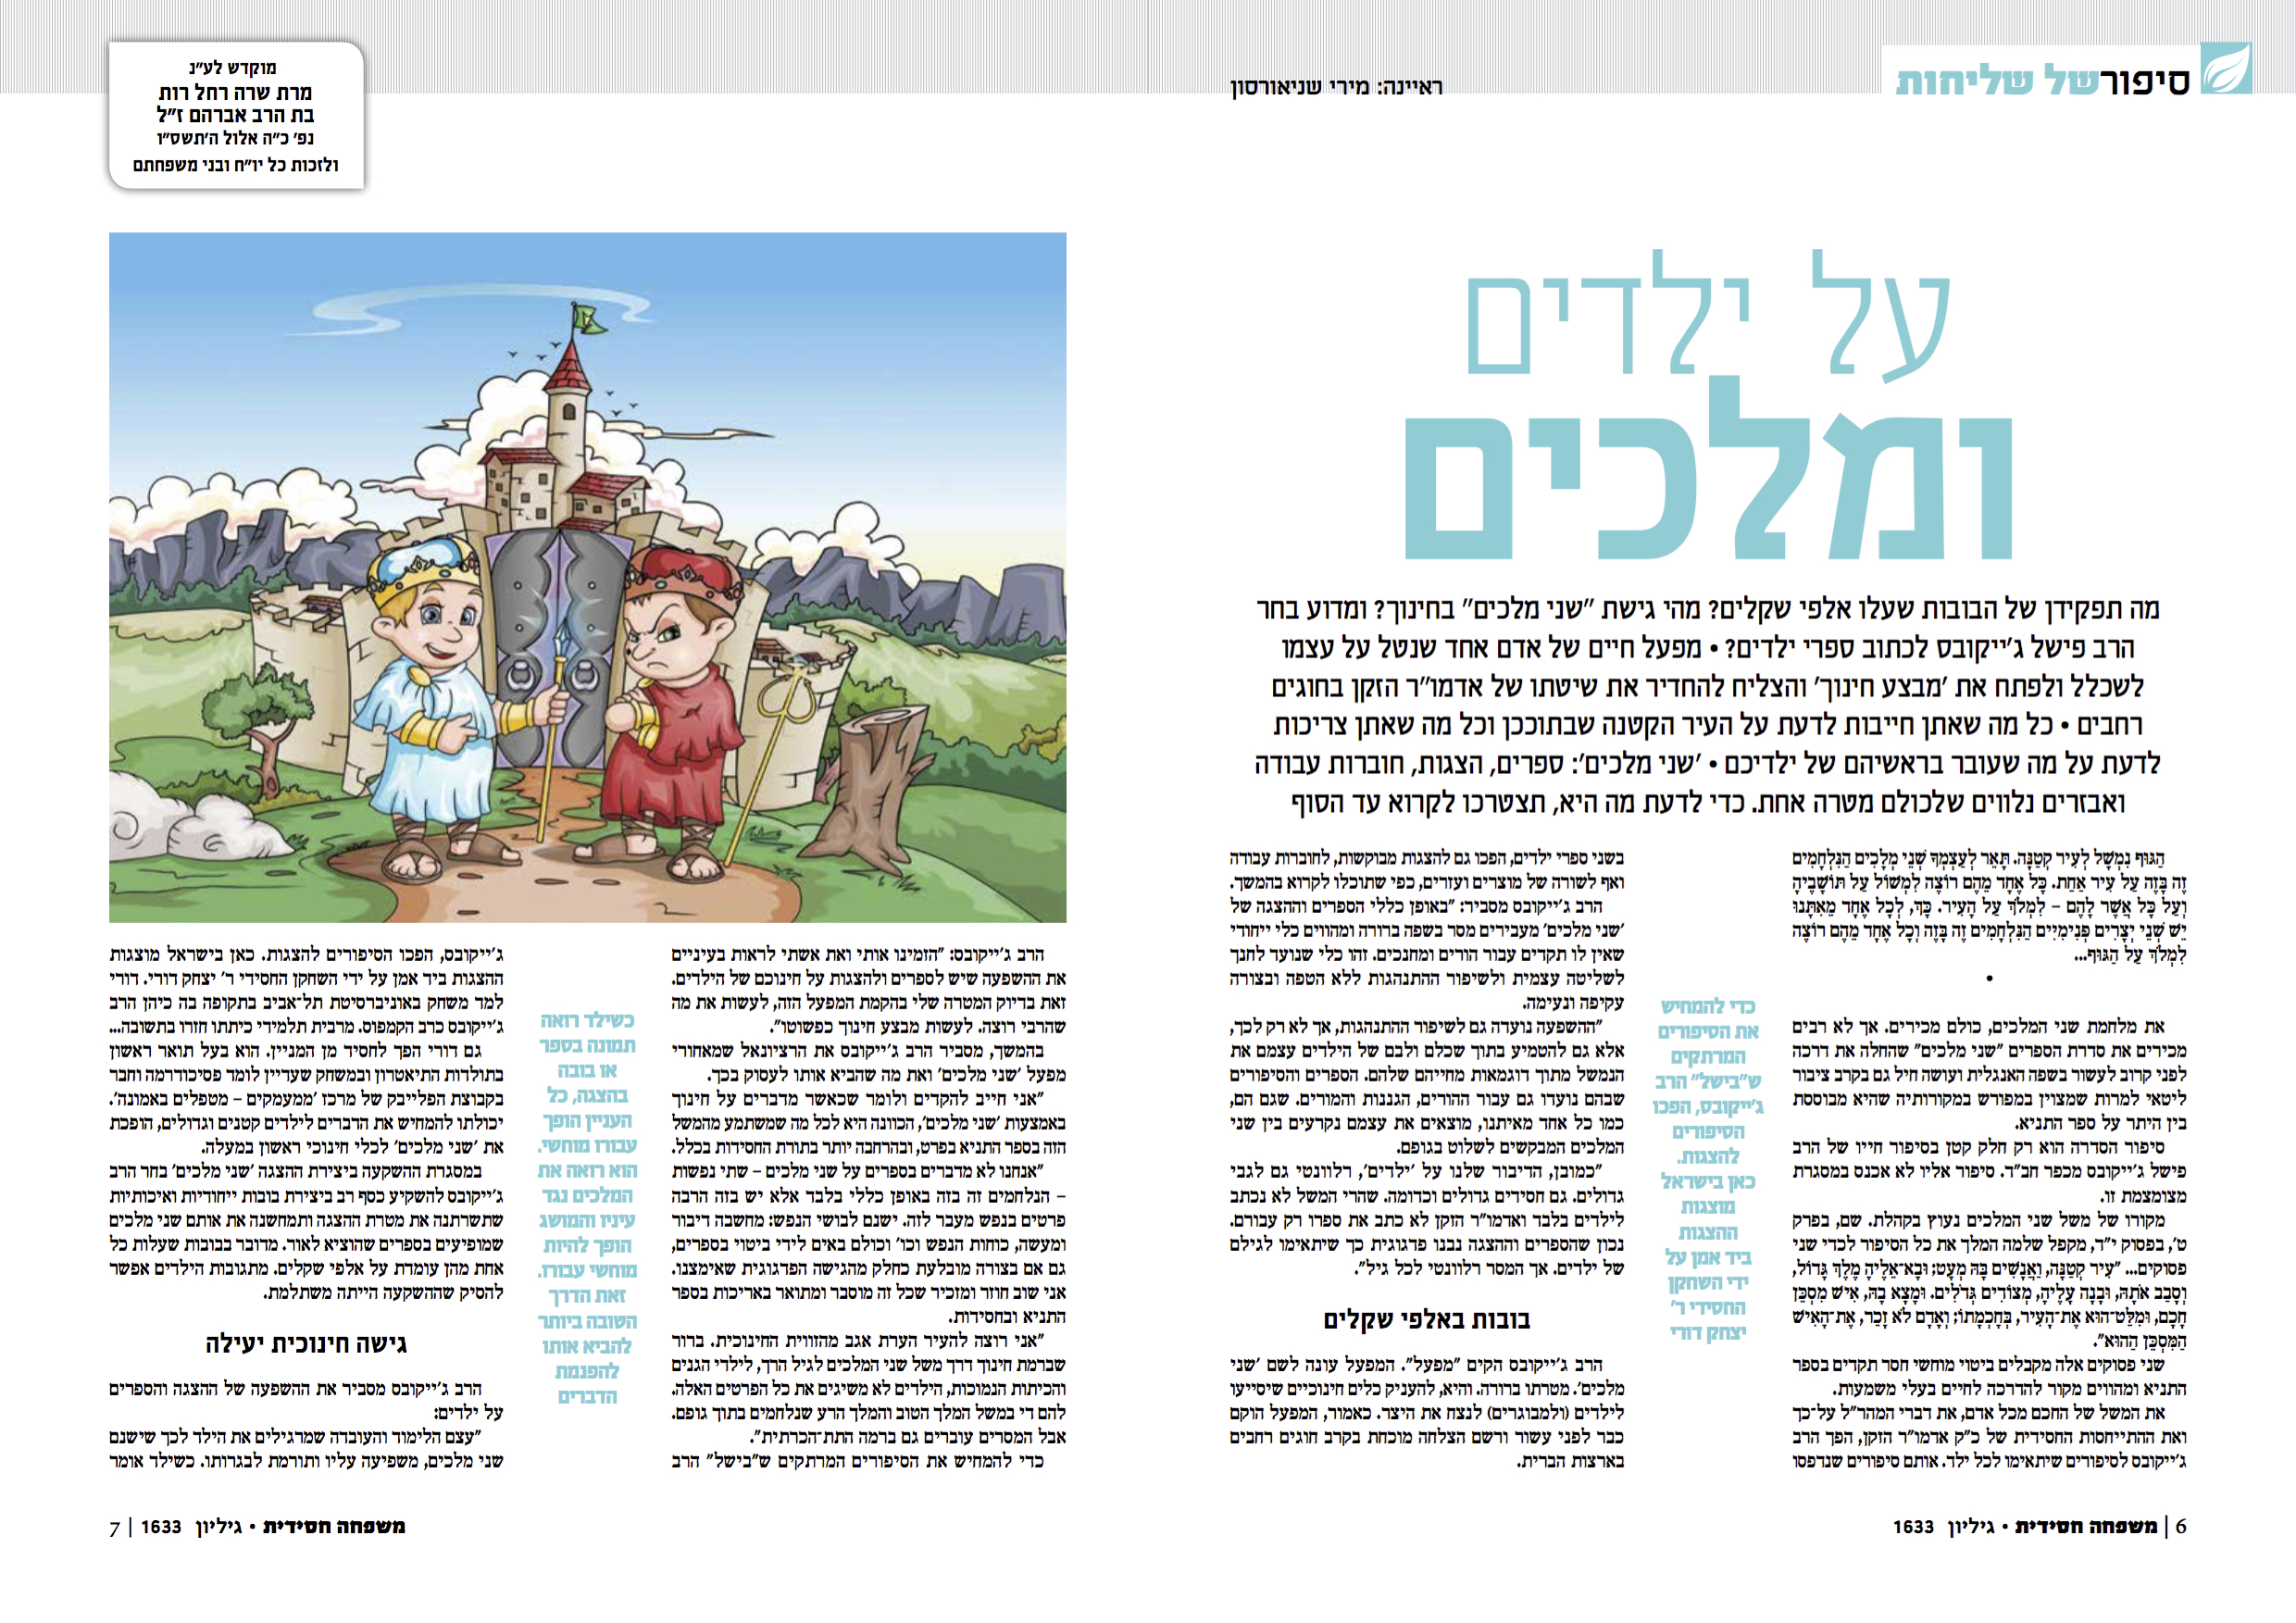 Two-Kings Article pg 1 Kf Chabad 26.11.15 copy